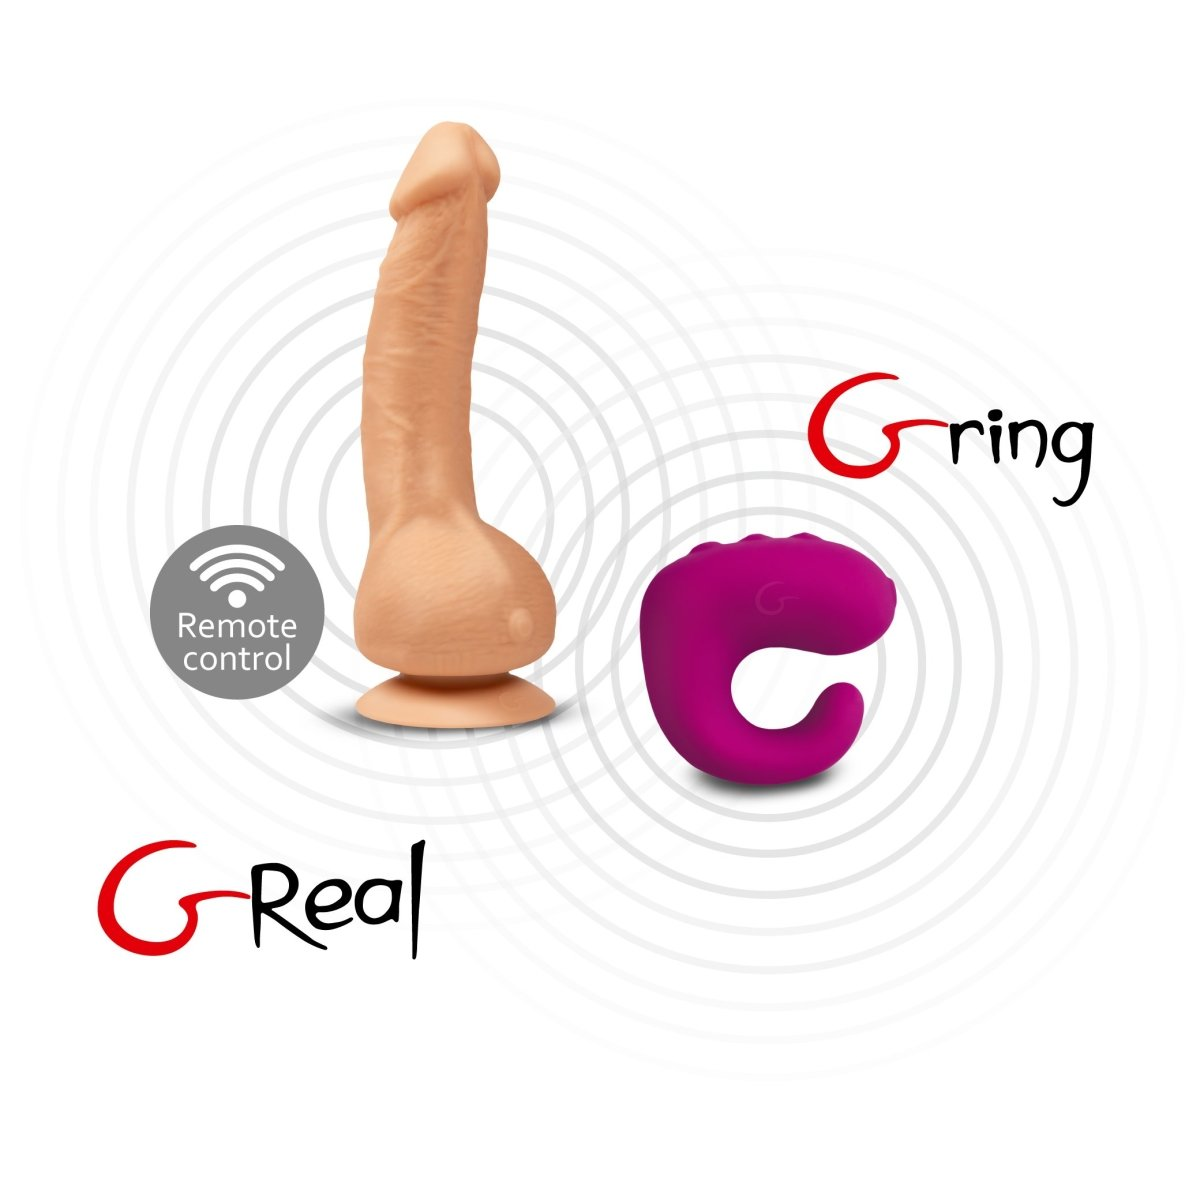 Bioskin™ Greal - Flesh - Buy Realistic Vibrating Dildo - Gvibe.com